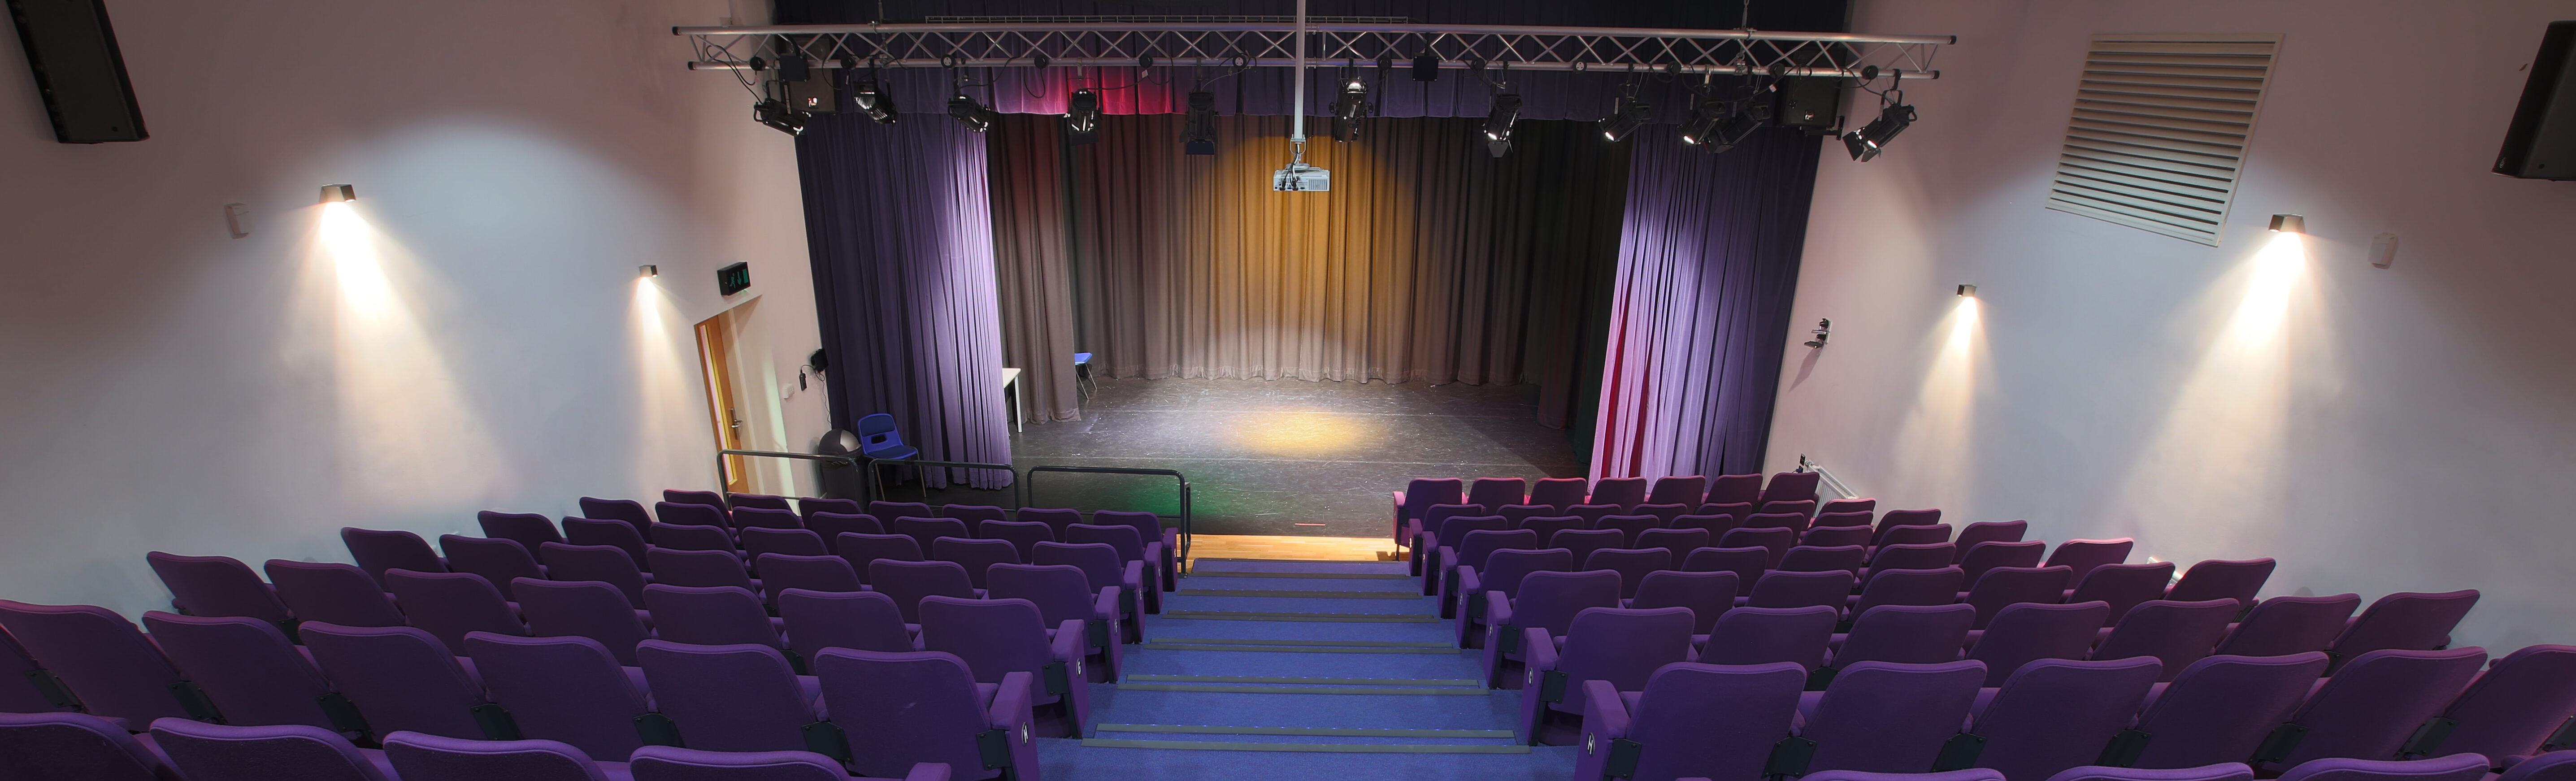 Cardinal Newman performance stage